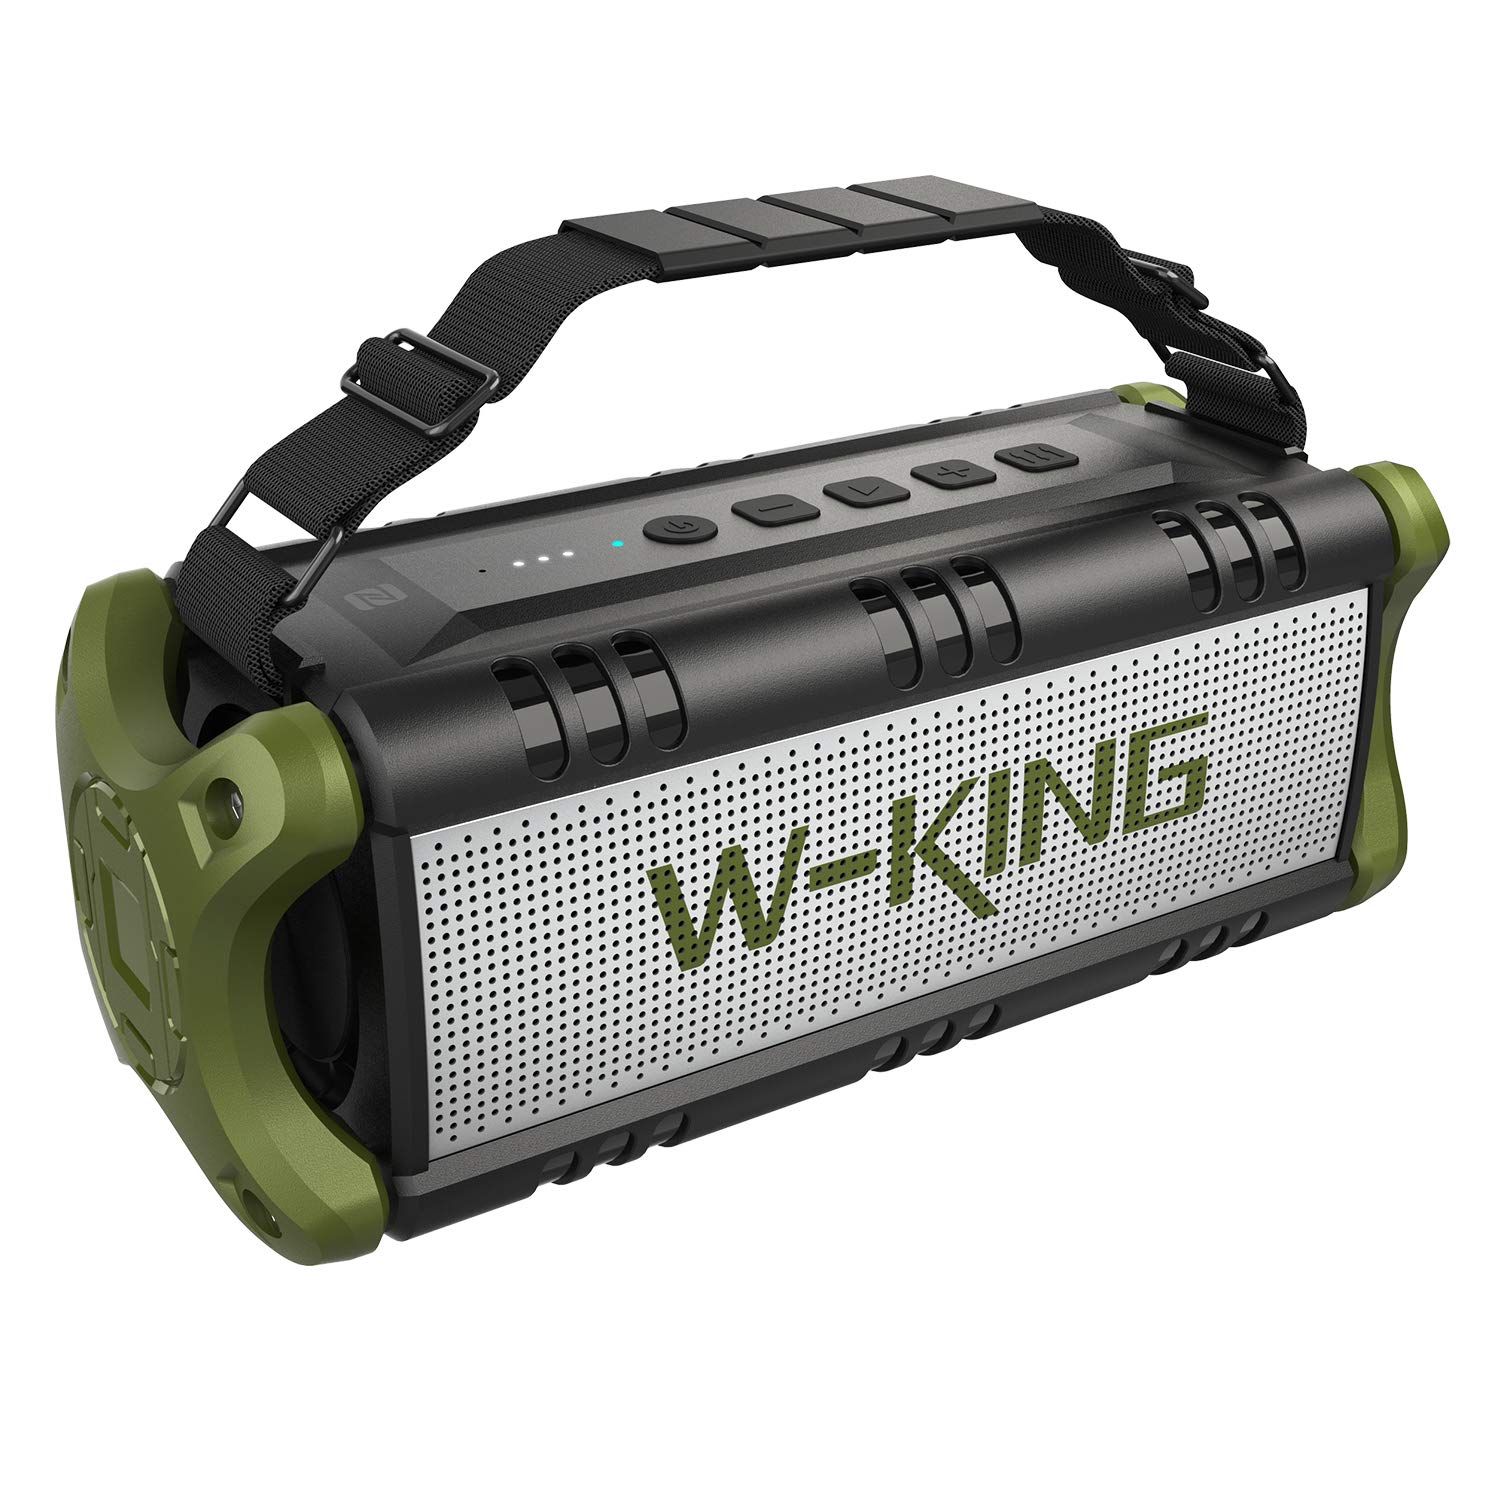 W-KING 50W Wireless Bluetooth Speakers & 8000mAh Battery Power Bank, Outdoor Portable Waterproof TWS Speaker, Powerful Rich Bass Loud Clear Stereo Sound for Home/Party/Outdoor/Travel by W-KING